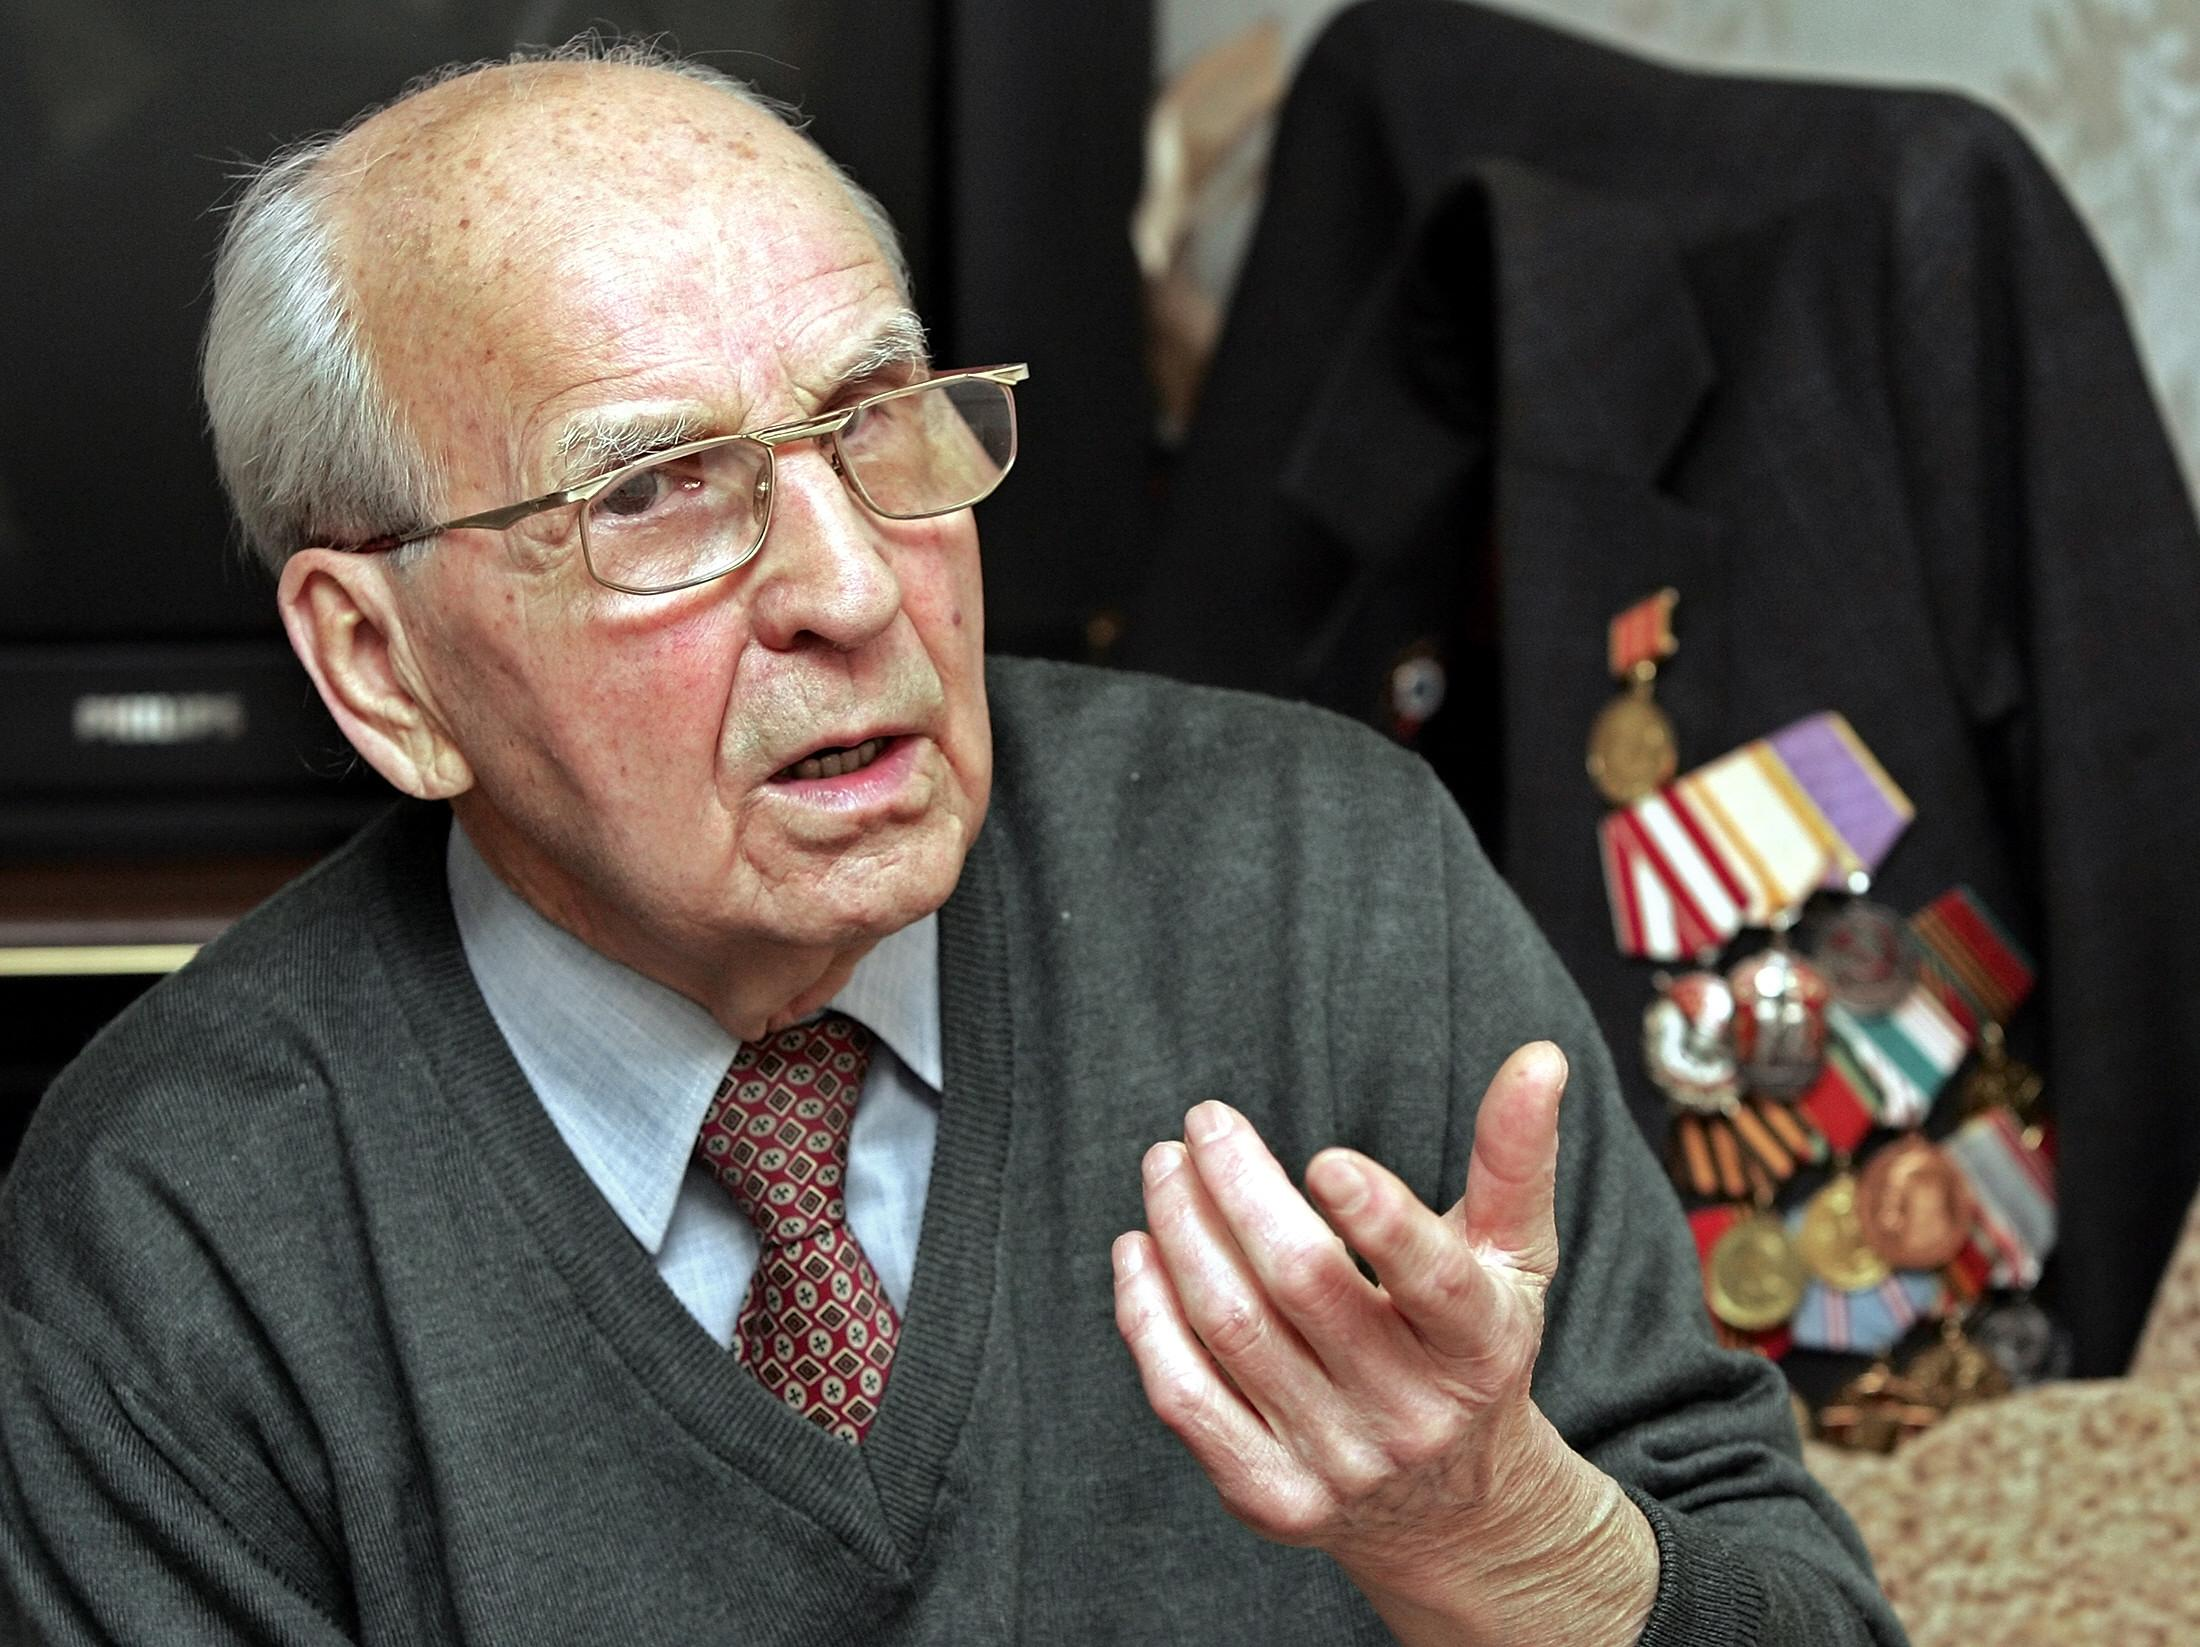 File picture shows Russian World War II veteran Ivan Martynushkin, who took part in the liberation of the Nazi concentration camp Auschwitz in 1945, speaking at his home in Moscow (AFP Photo/Yuri Kadobnov)